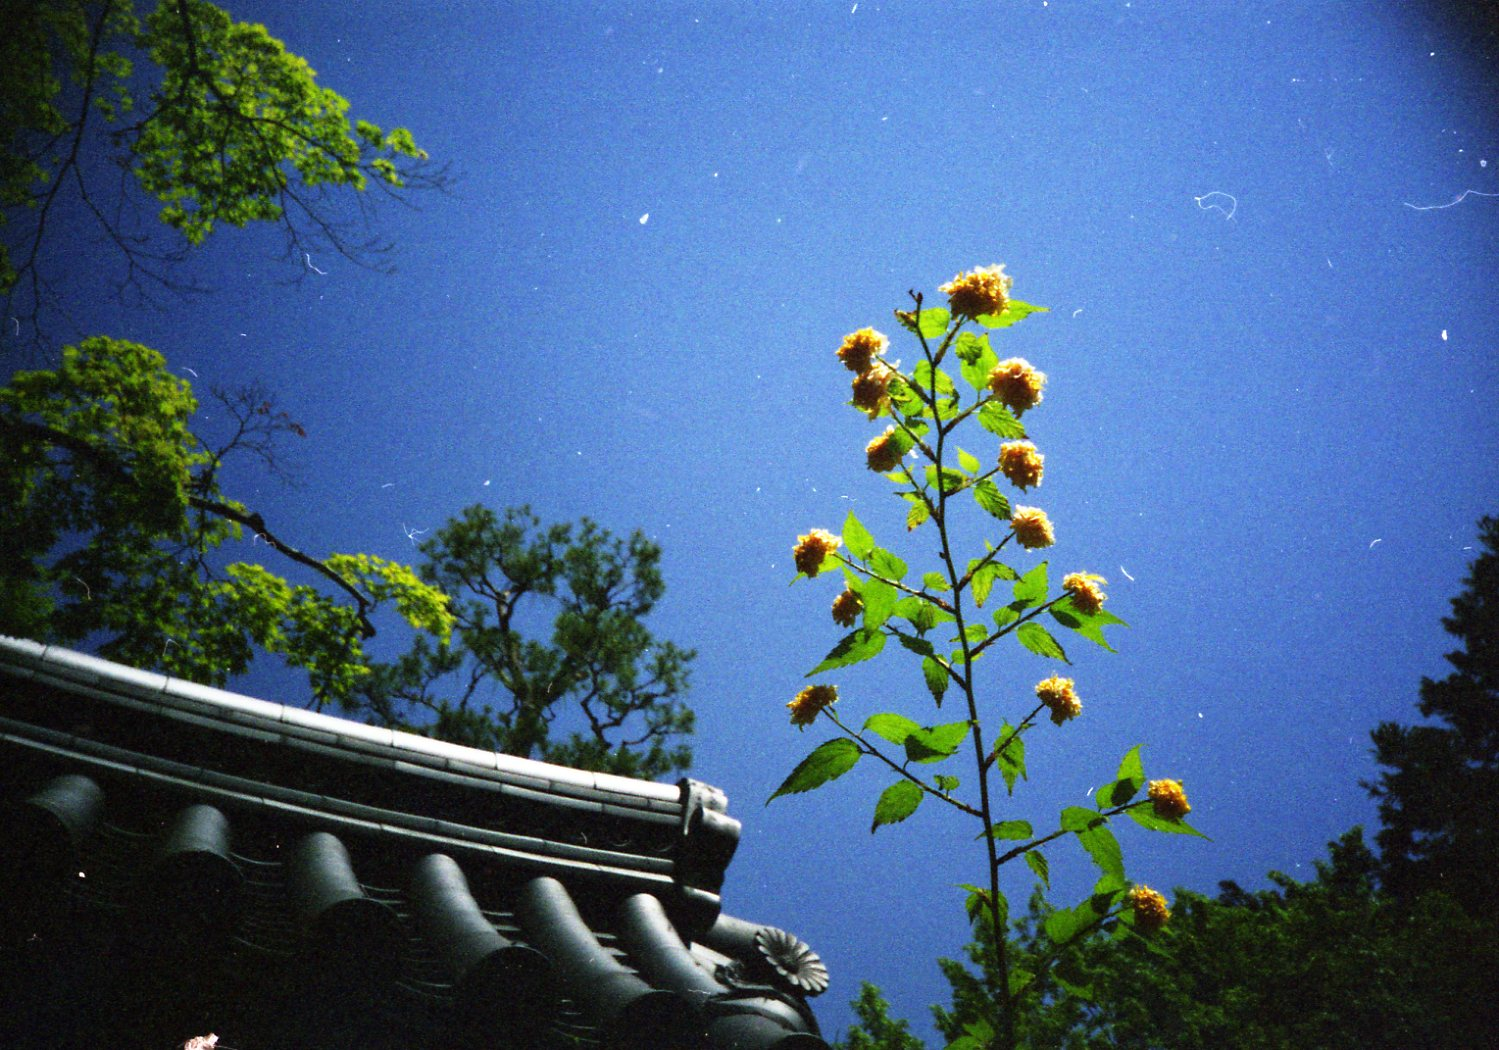 LOMO with AGFA ULTRA 続編